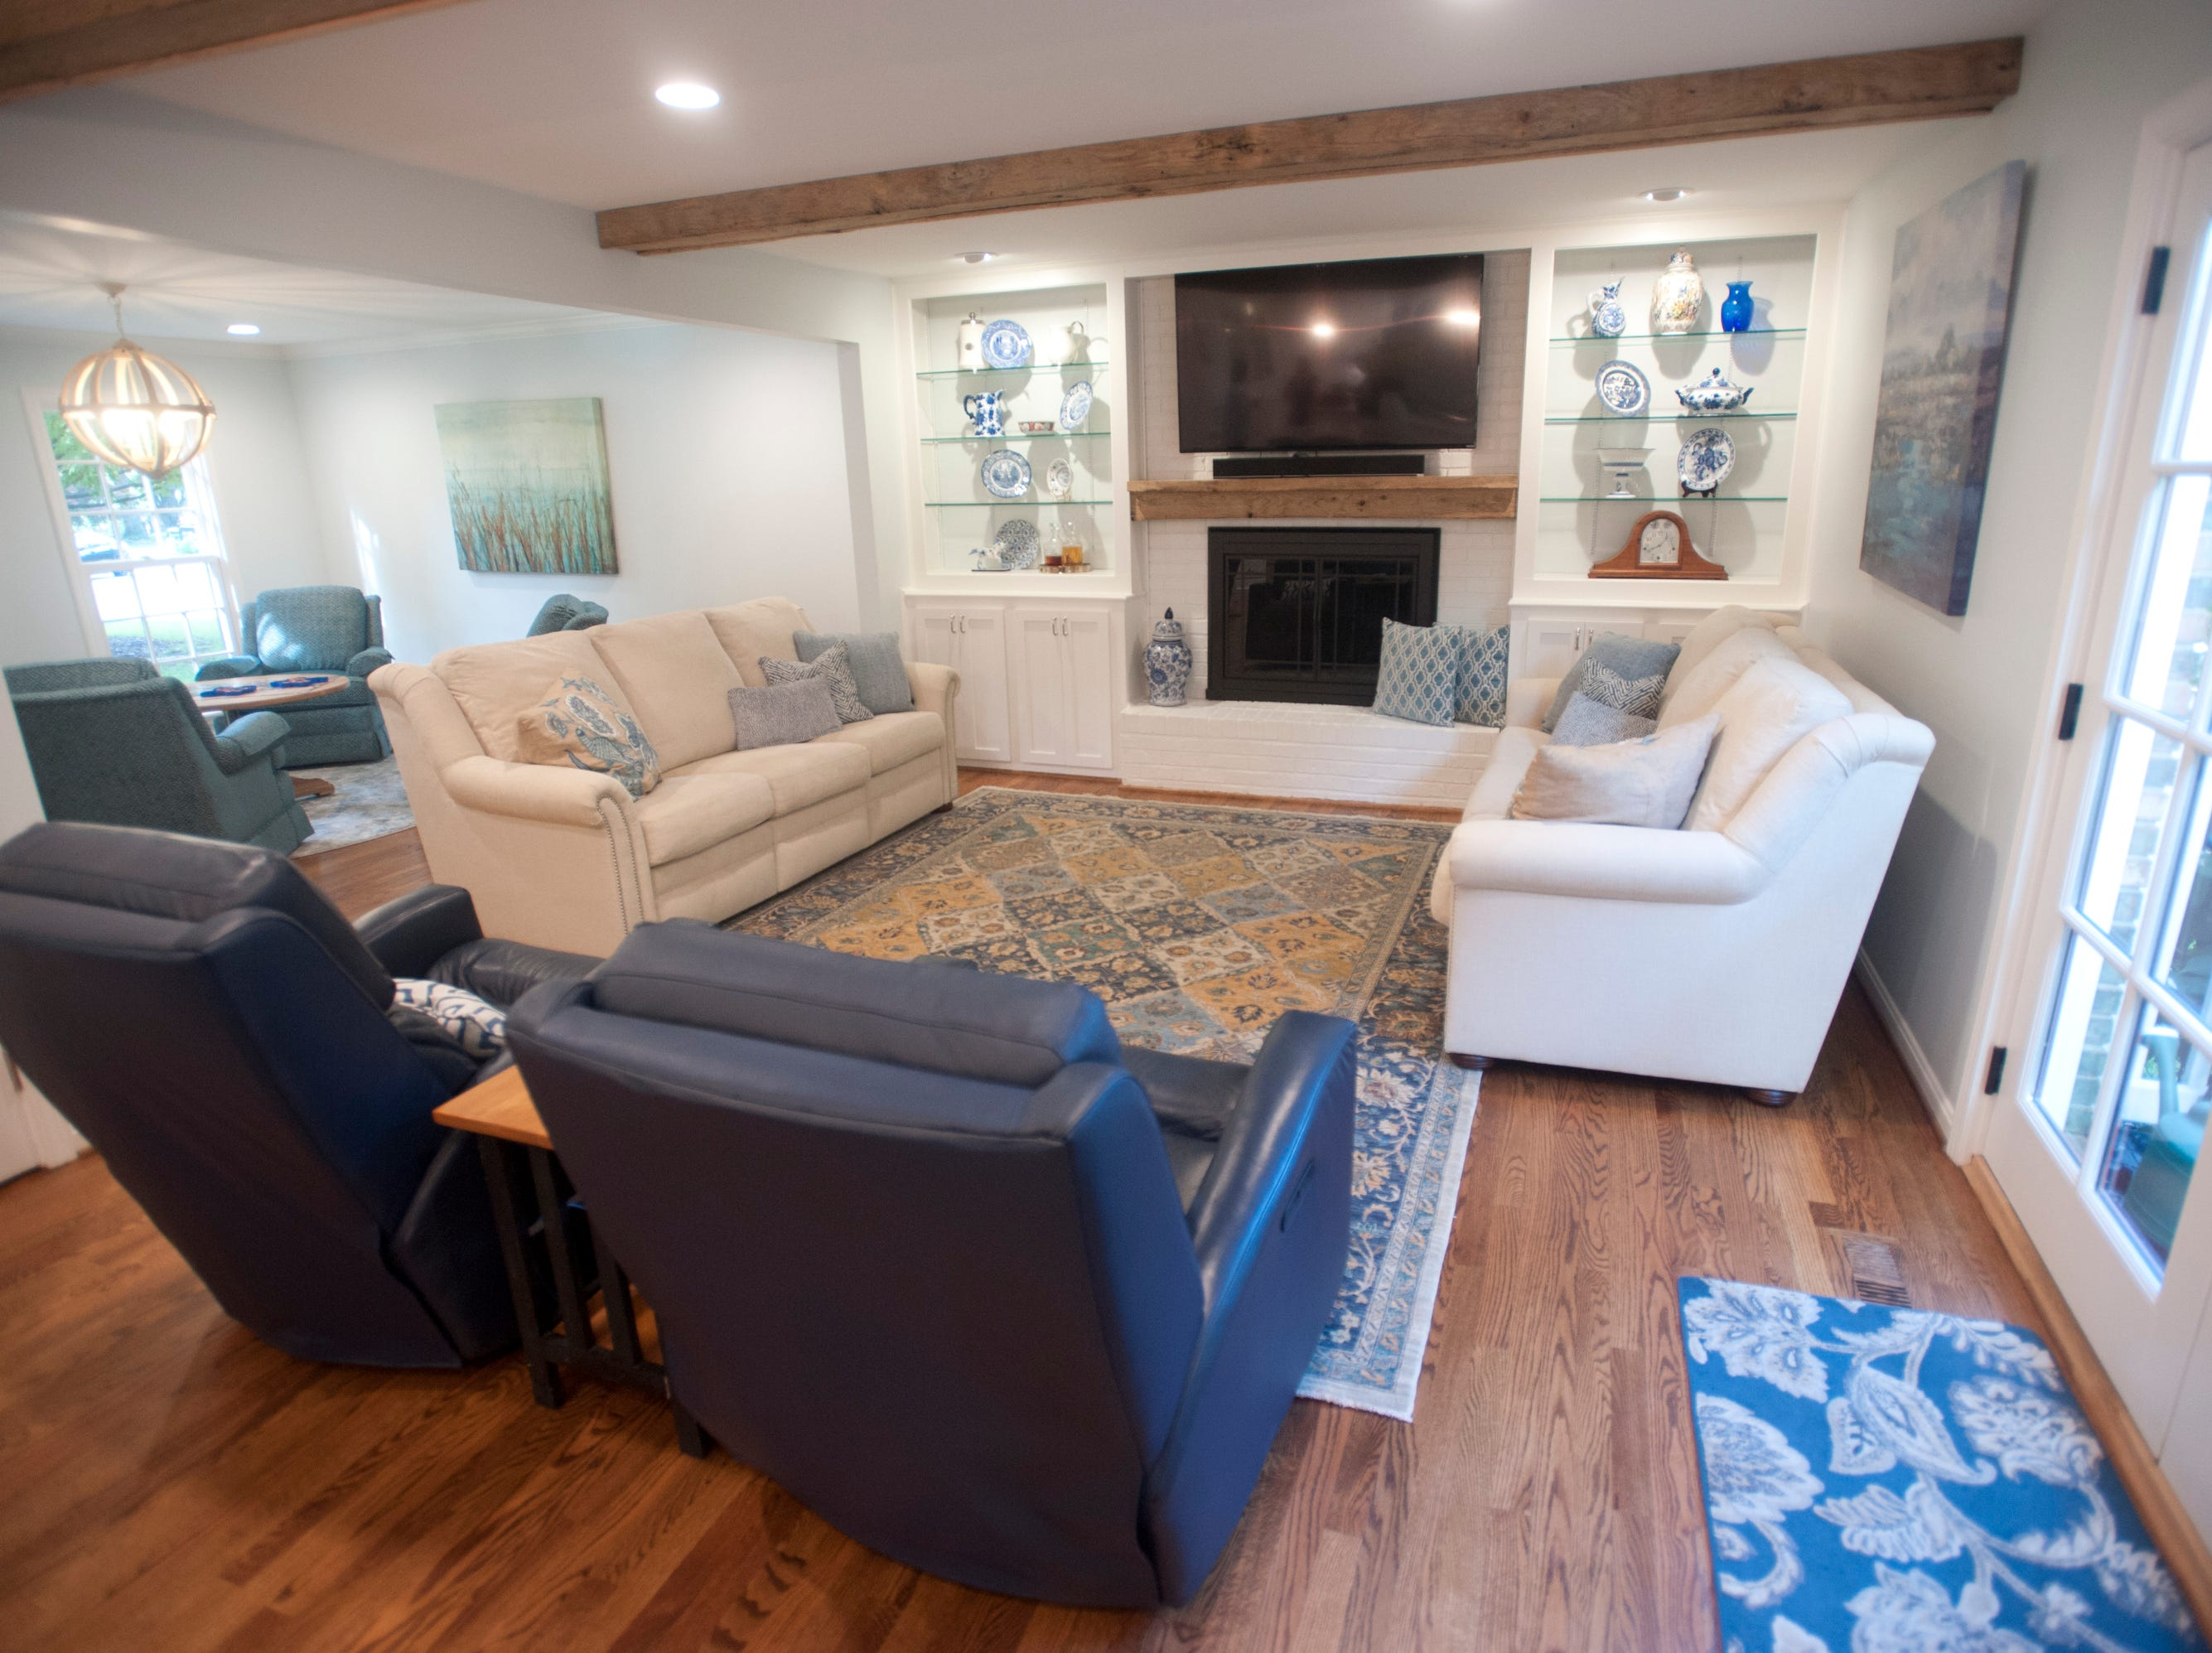 The family room in the home of Jean Hodges which has recently been renovated by Bailey Remodeling